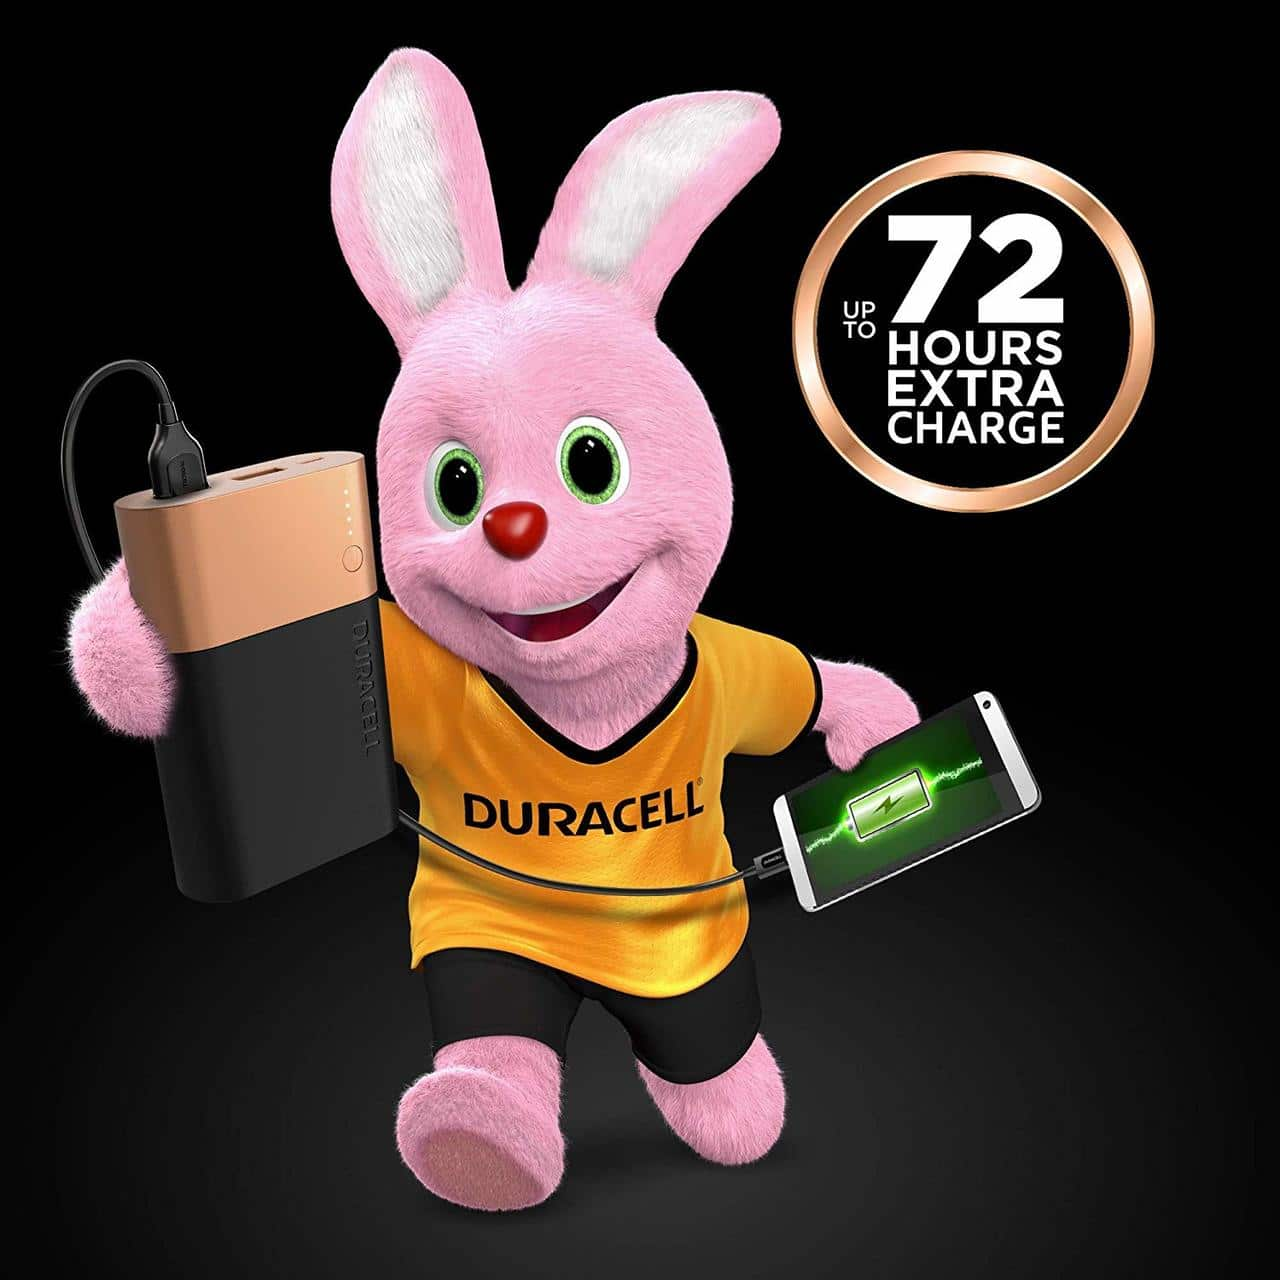 DURACELL POWERBANK 10050 mAh